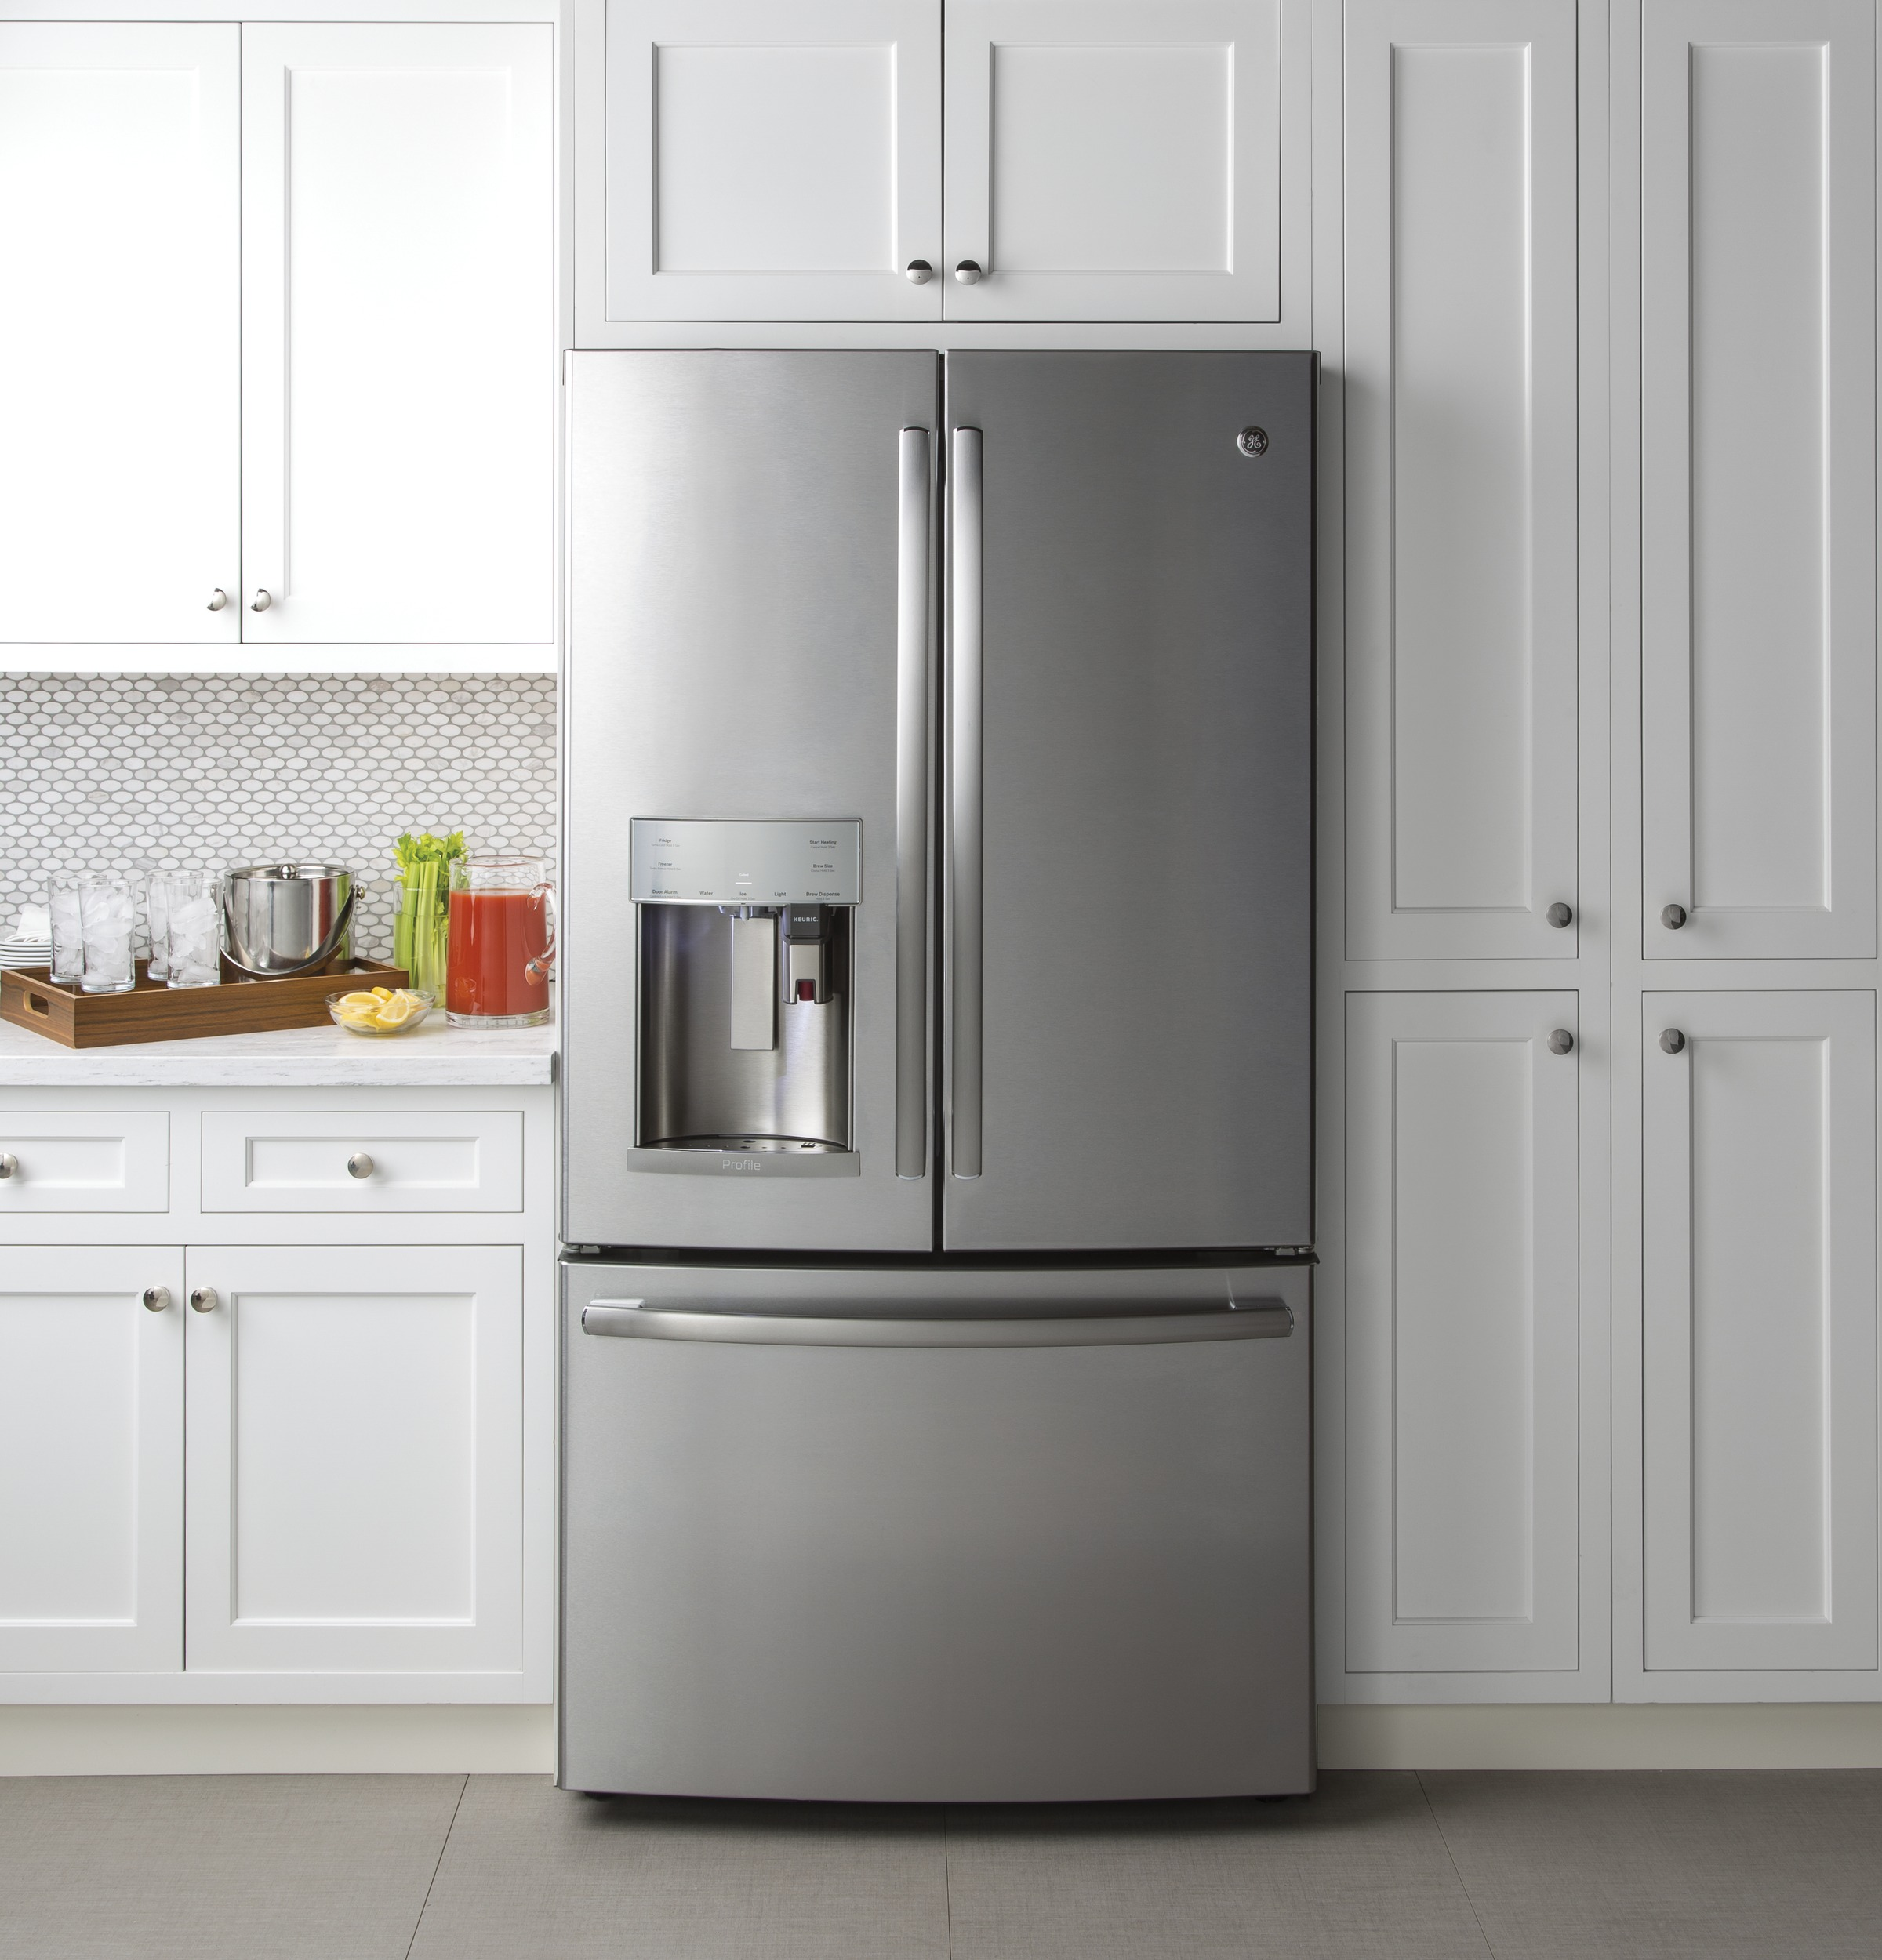 Model: PFE28PSKSS | GE Profile™ Series ENERGY STAR® 27.8 Cu. Ft. French-Door Refrigerator